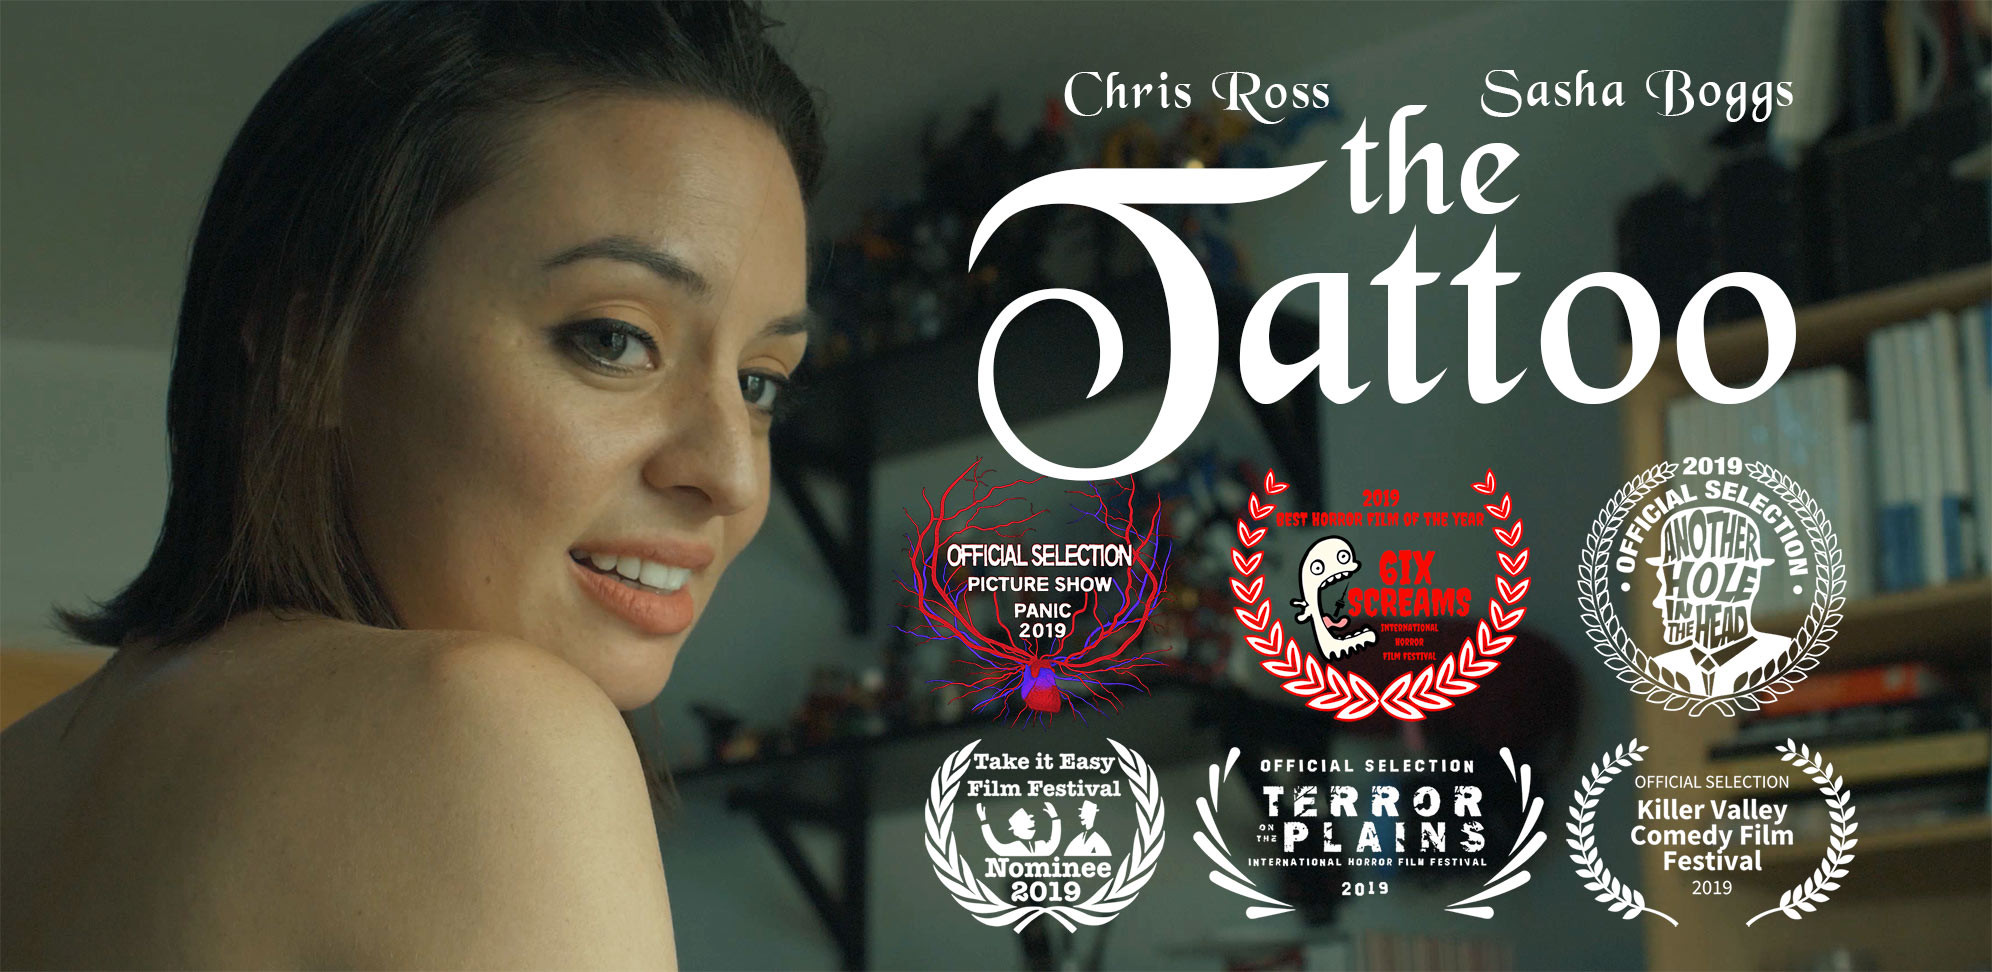 The Tattoo (2018)